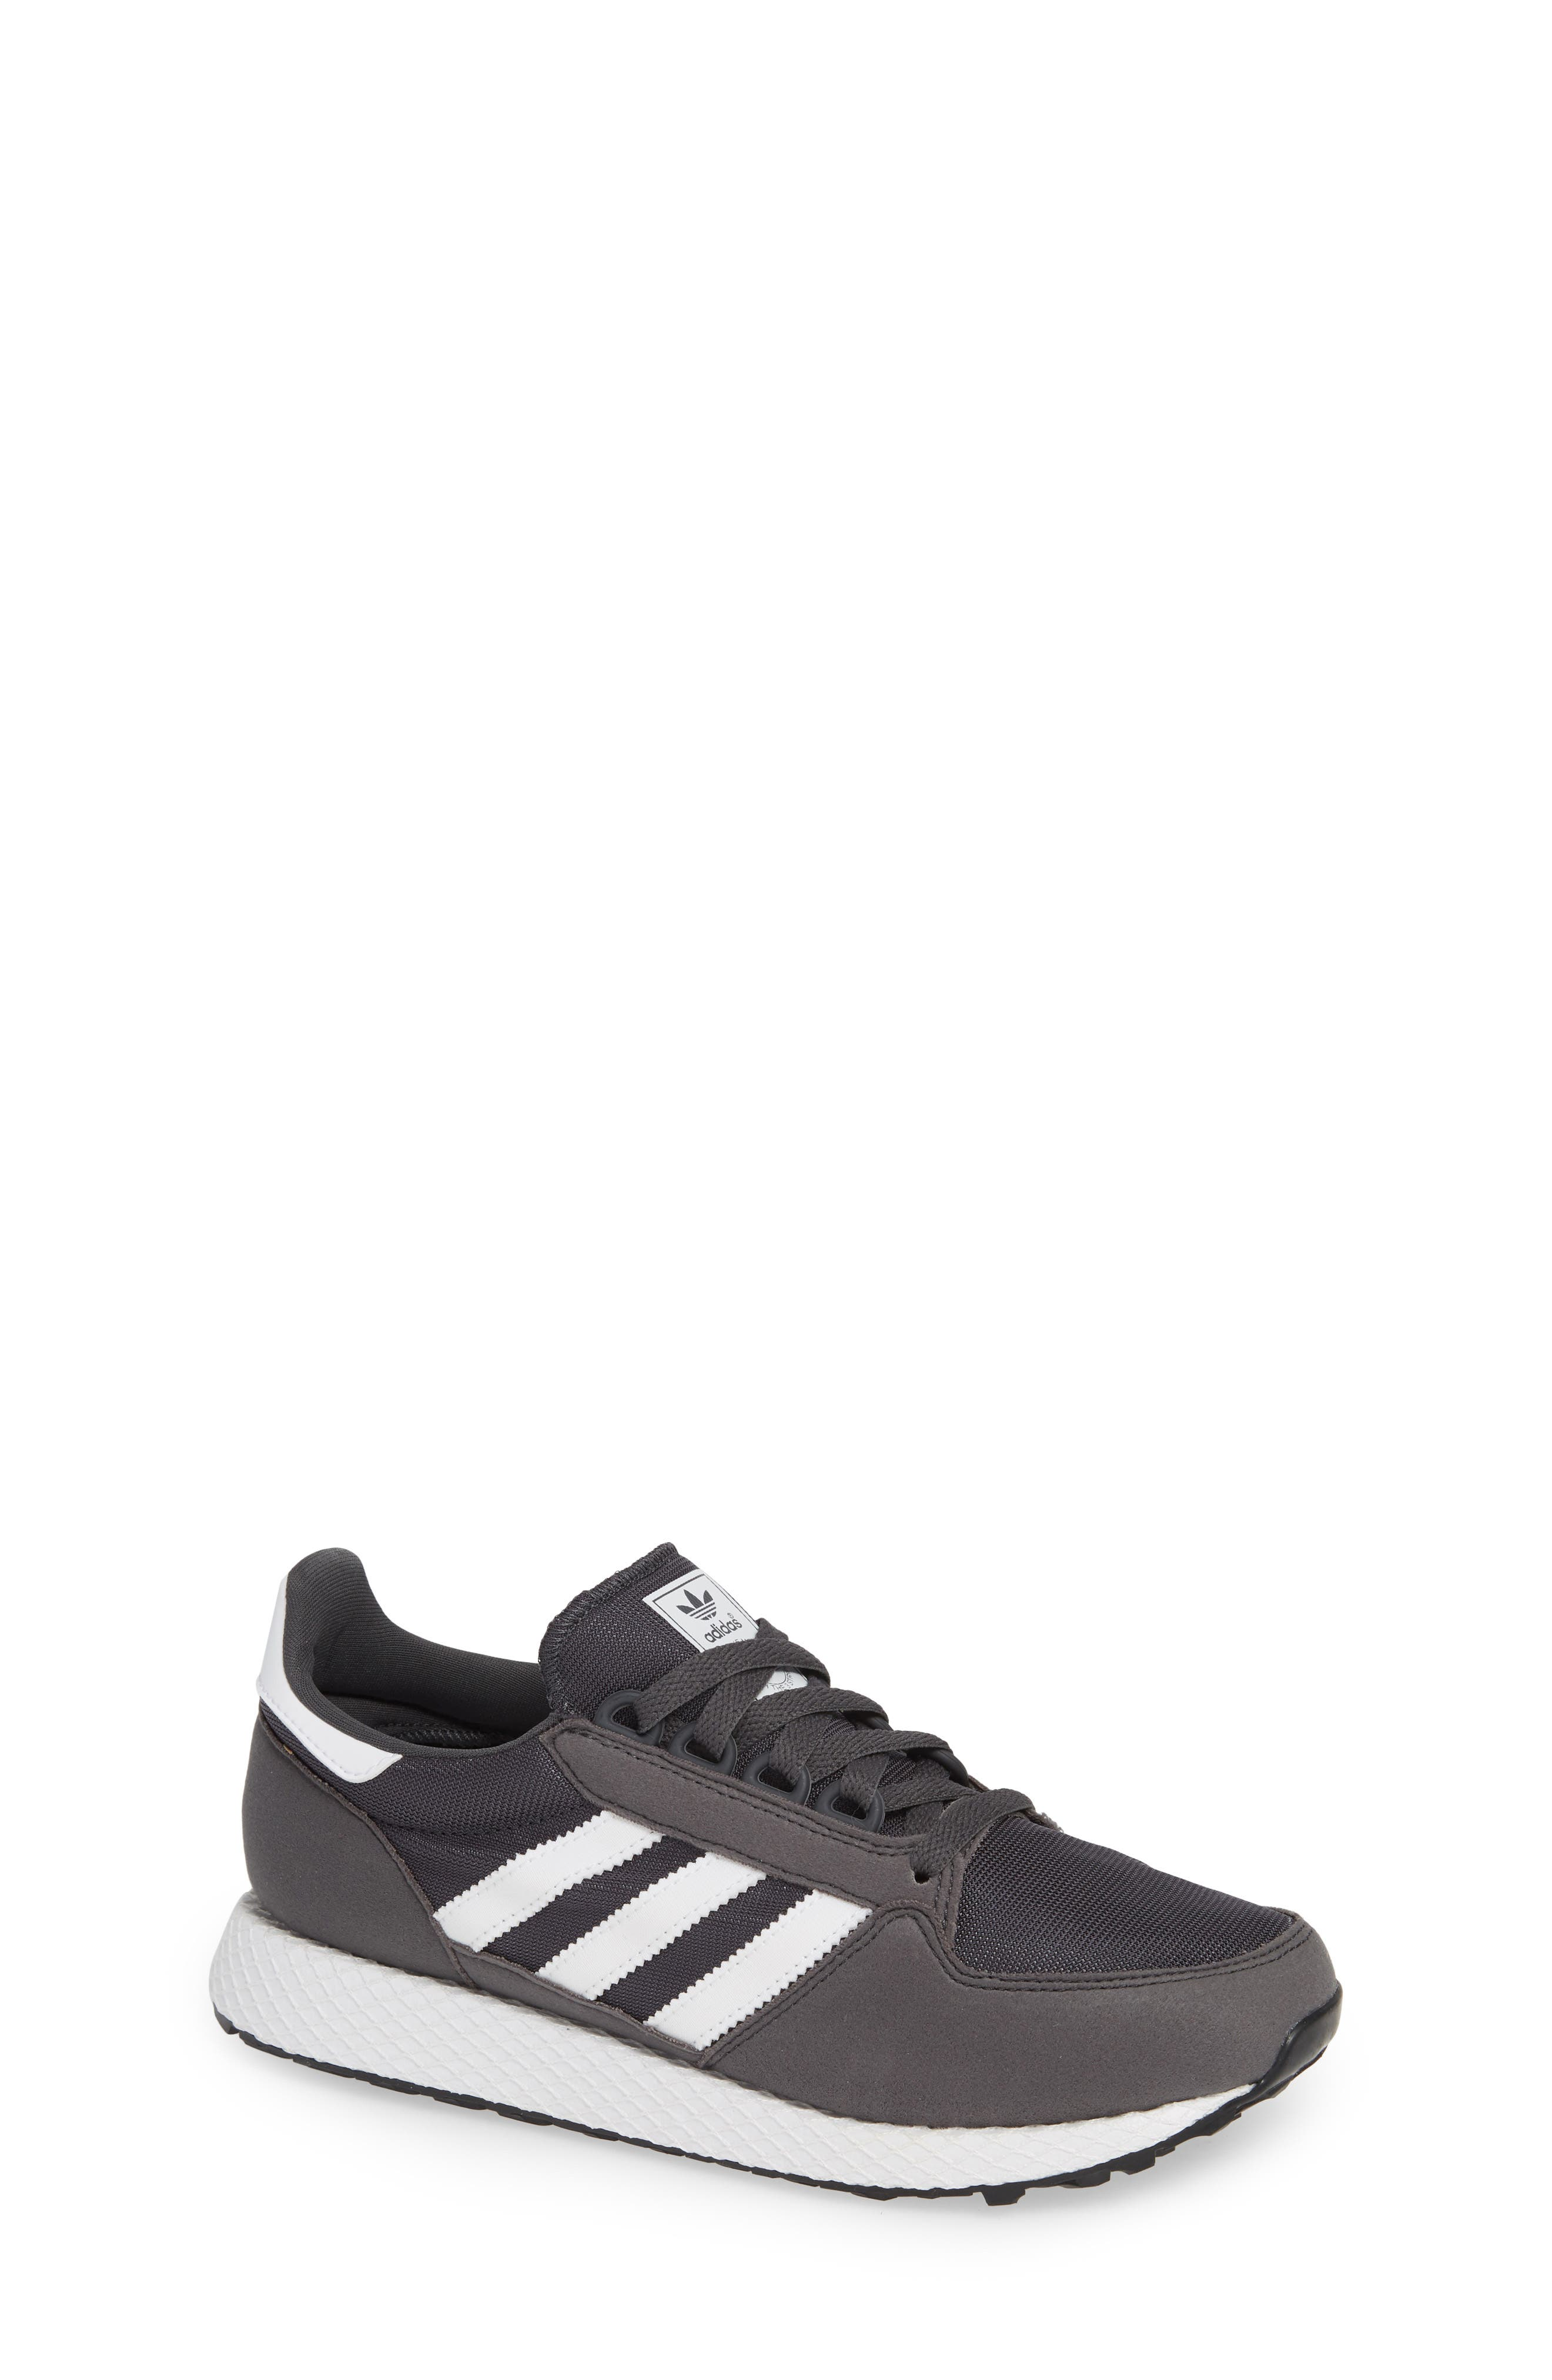 ADIDAS, Forest Grove Sneaker, Main thumbnail 1, color, GREY SIX/ WHITE/ GREY SIX